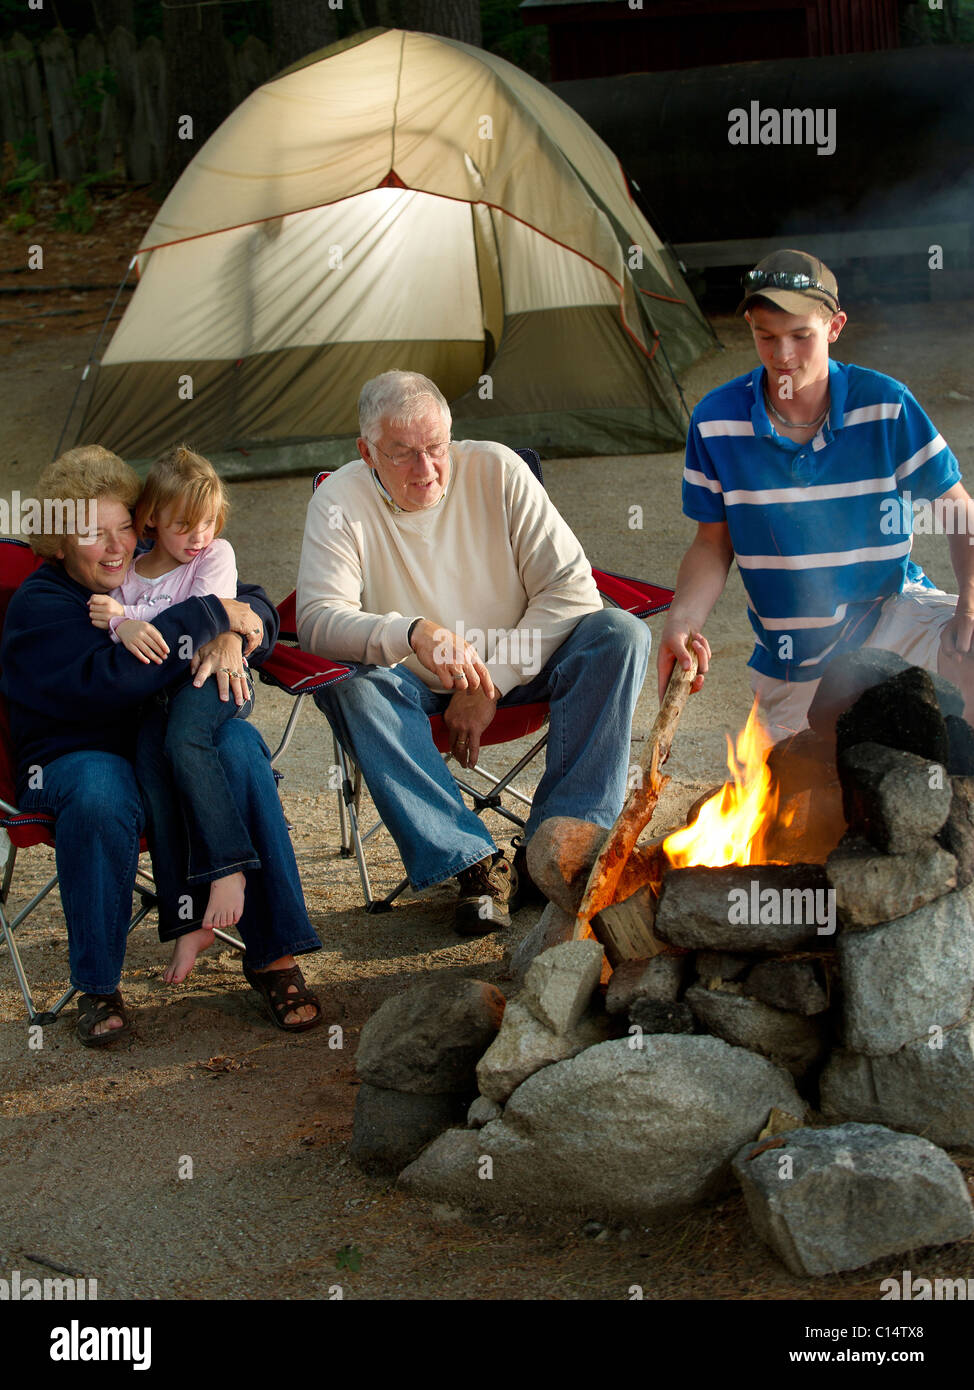 Maine Camp Life - Stock Image